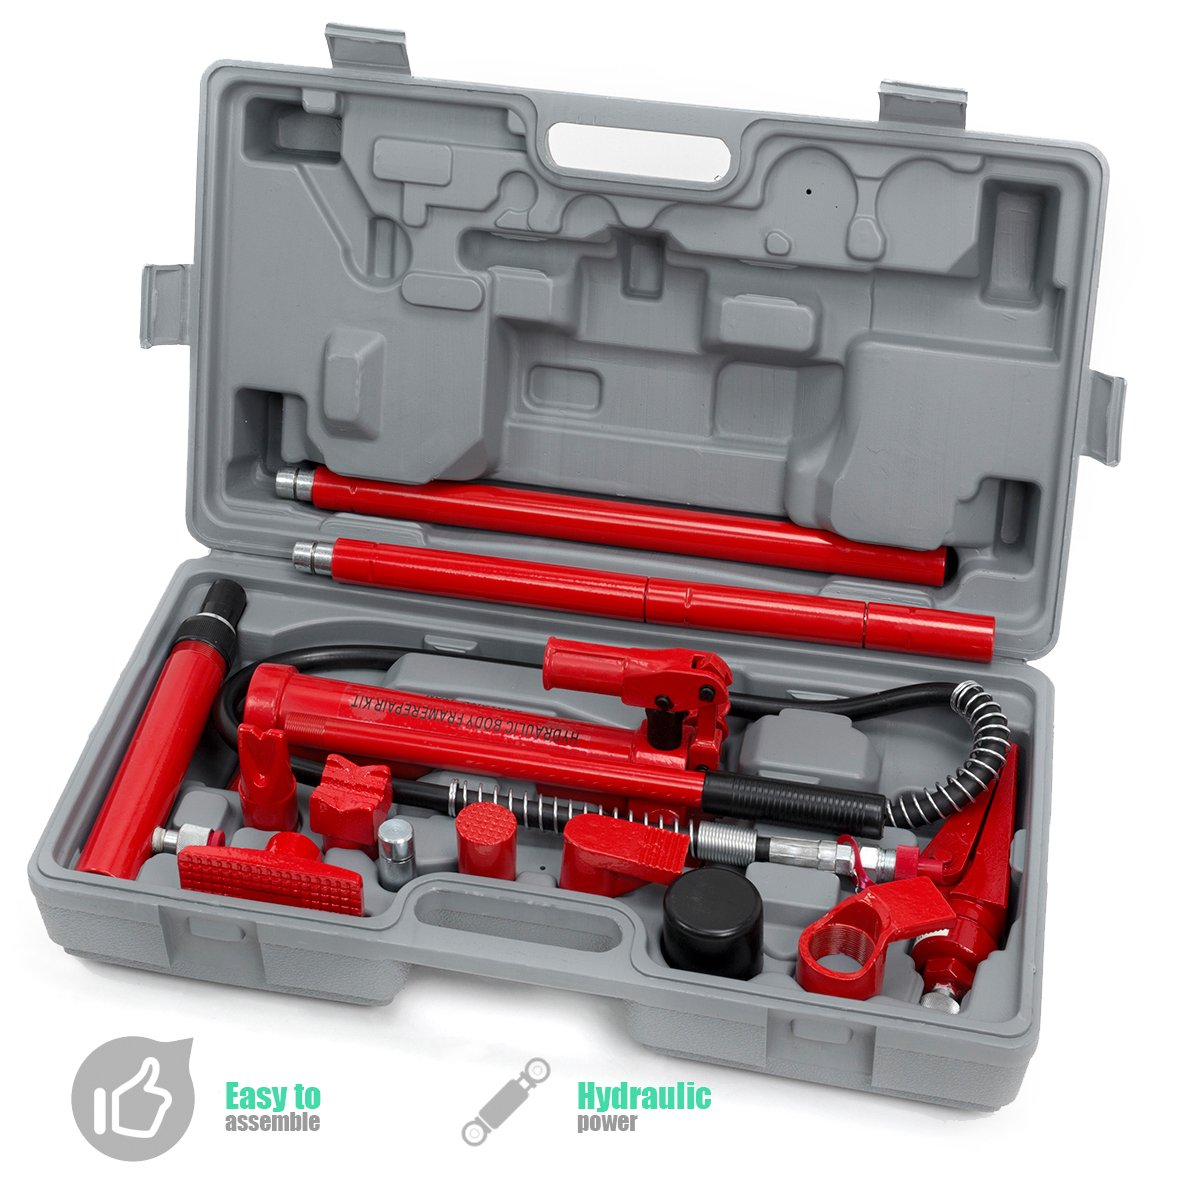 XtremepowerUS Hydraulic Porta Power Auto Body Frame Repair Kit (10 Ton or 4 Ton)